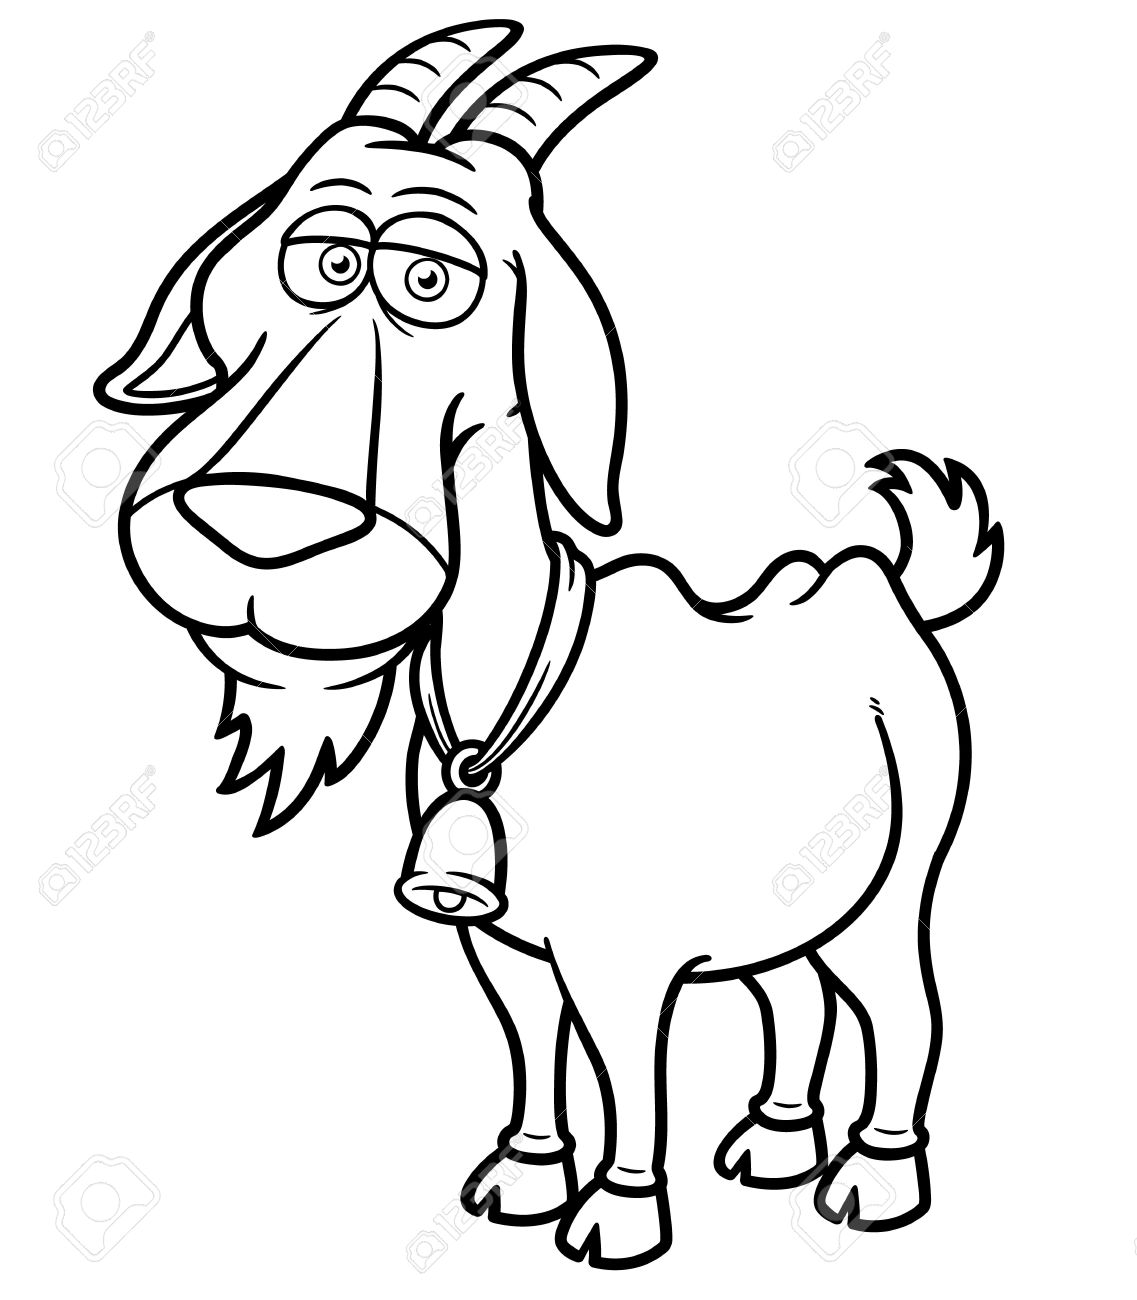 Coloring pictures goat - Vector Illustration Of Goat Cartoon Coloring Book Stock Vector 19717259